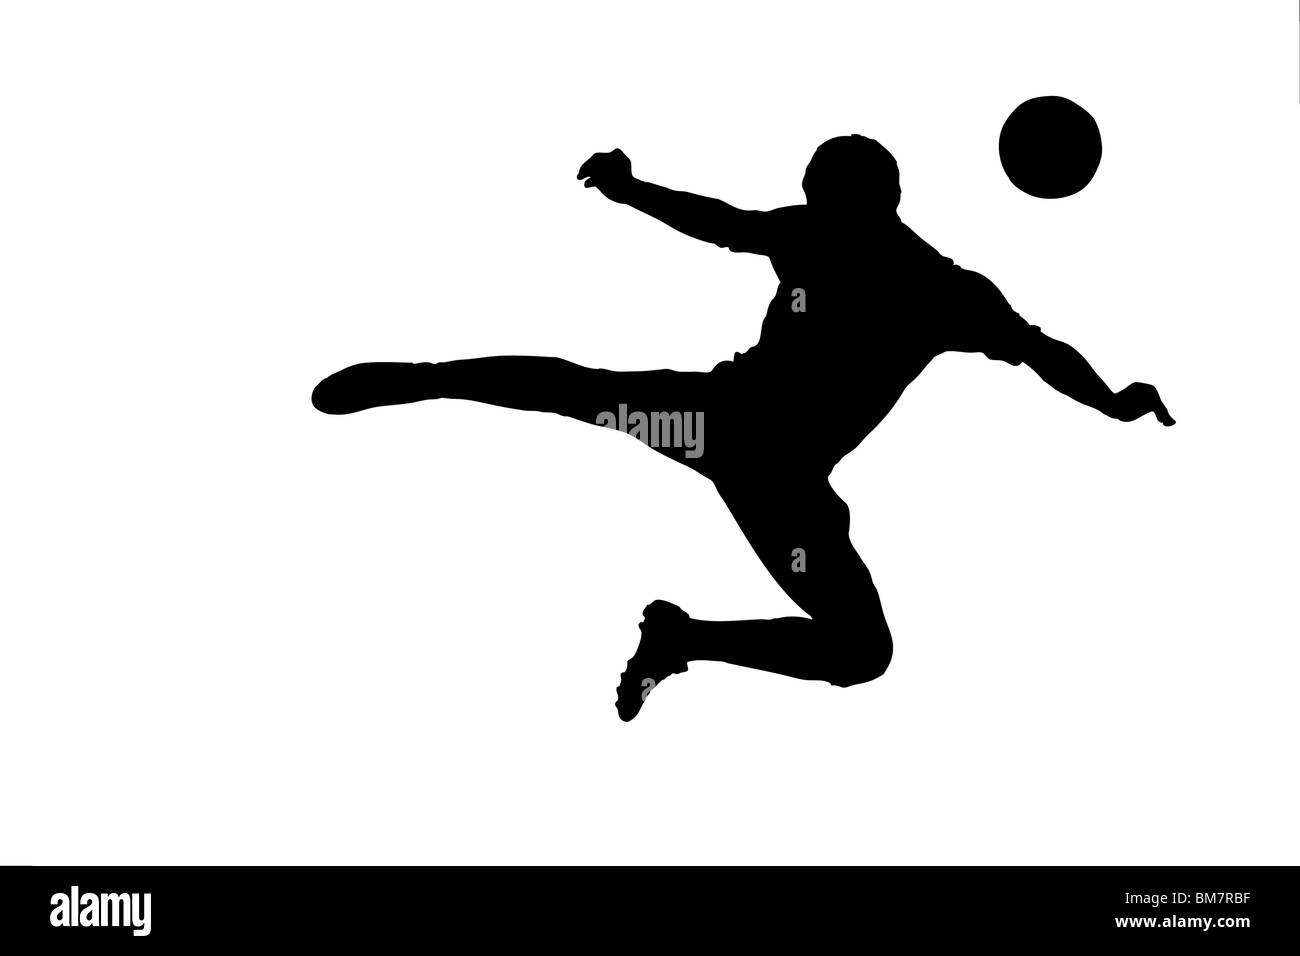 A silhouette of a soccer player shooting a ball - Stock Image